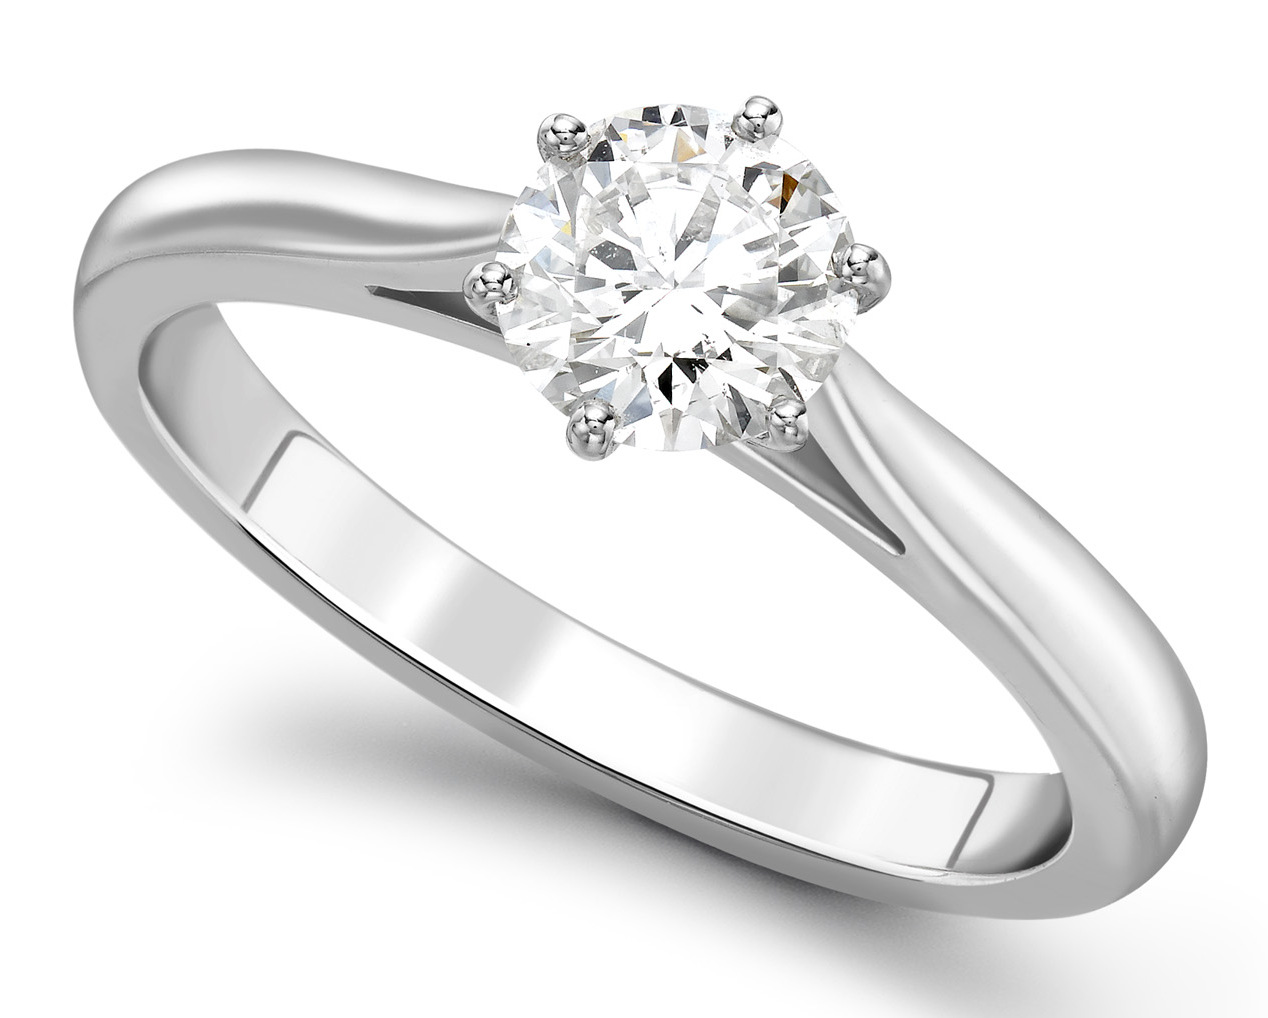 Round Six Claw White Gold Engagement Ring    GRC757 Main Image